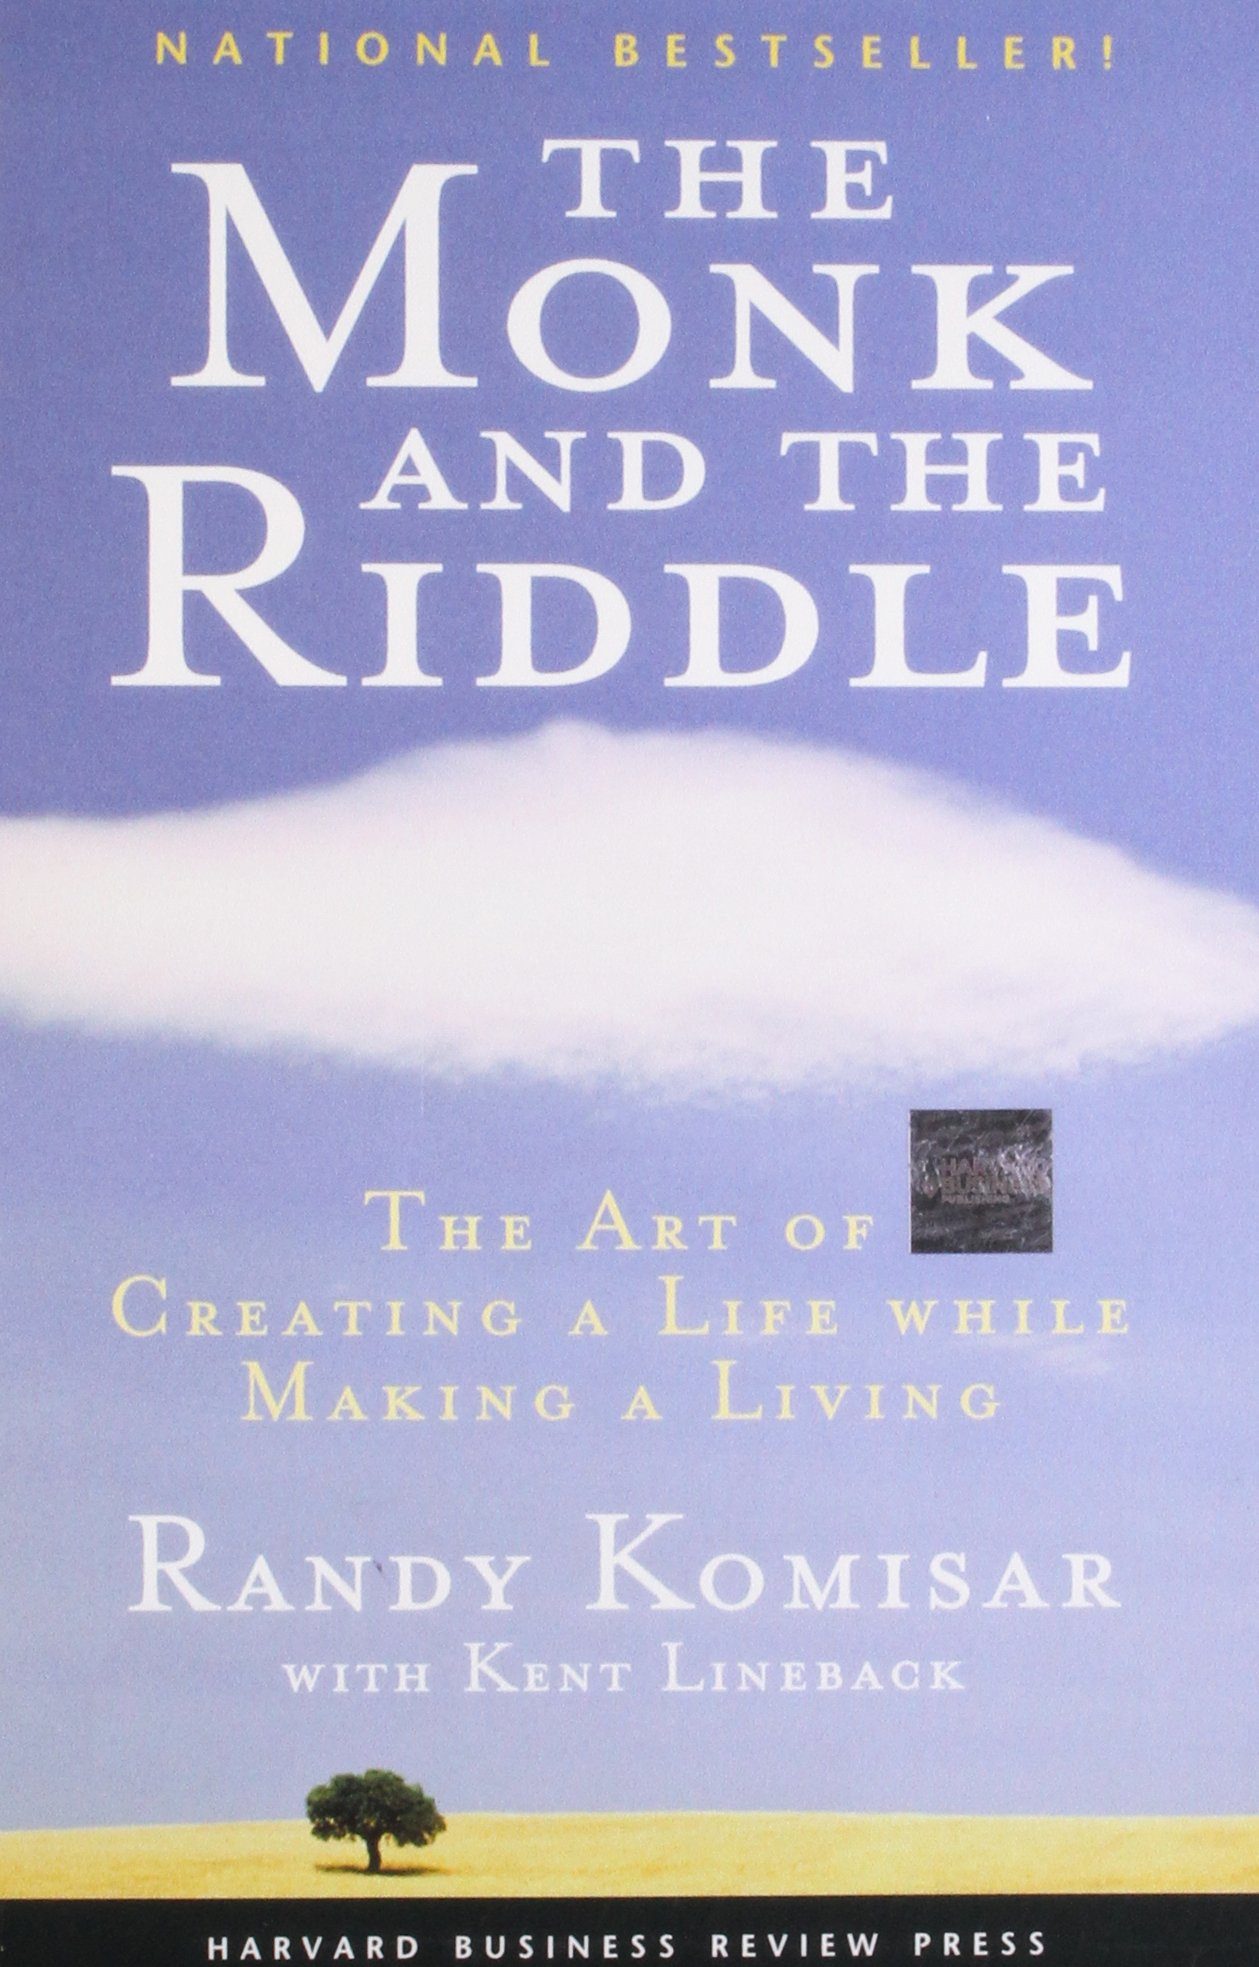 The Monk and the Riddle- The Art of Creating a Life While Making a Living